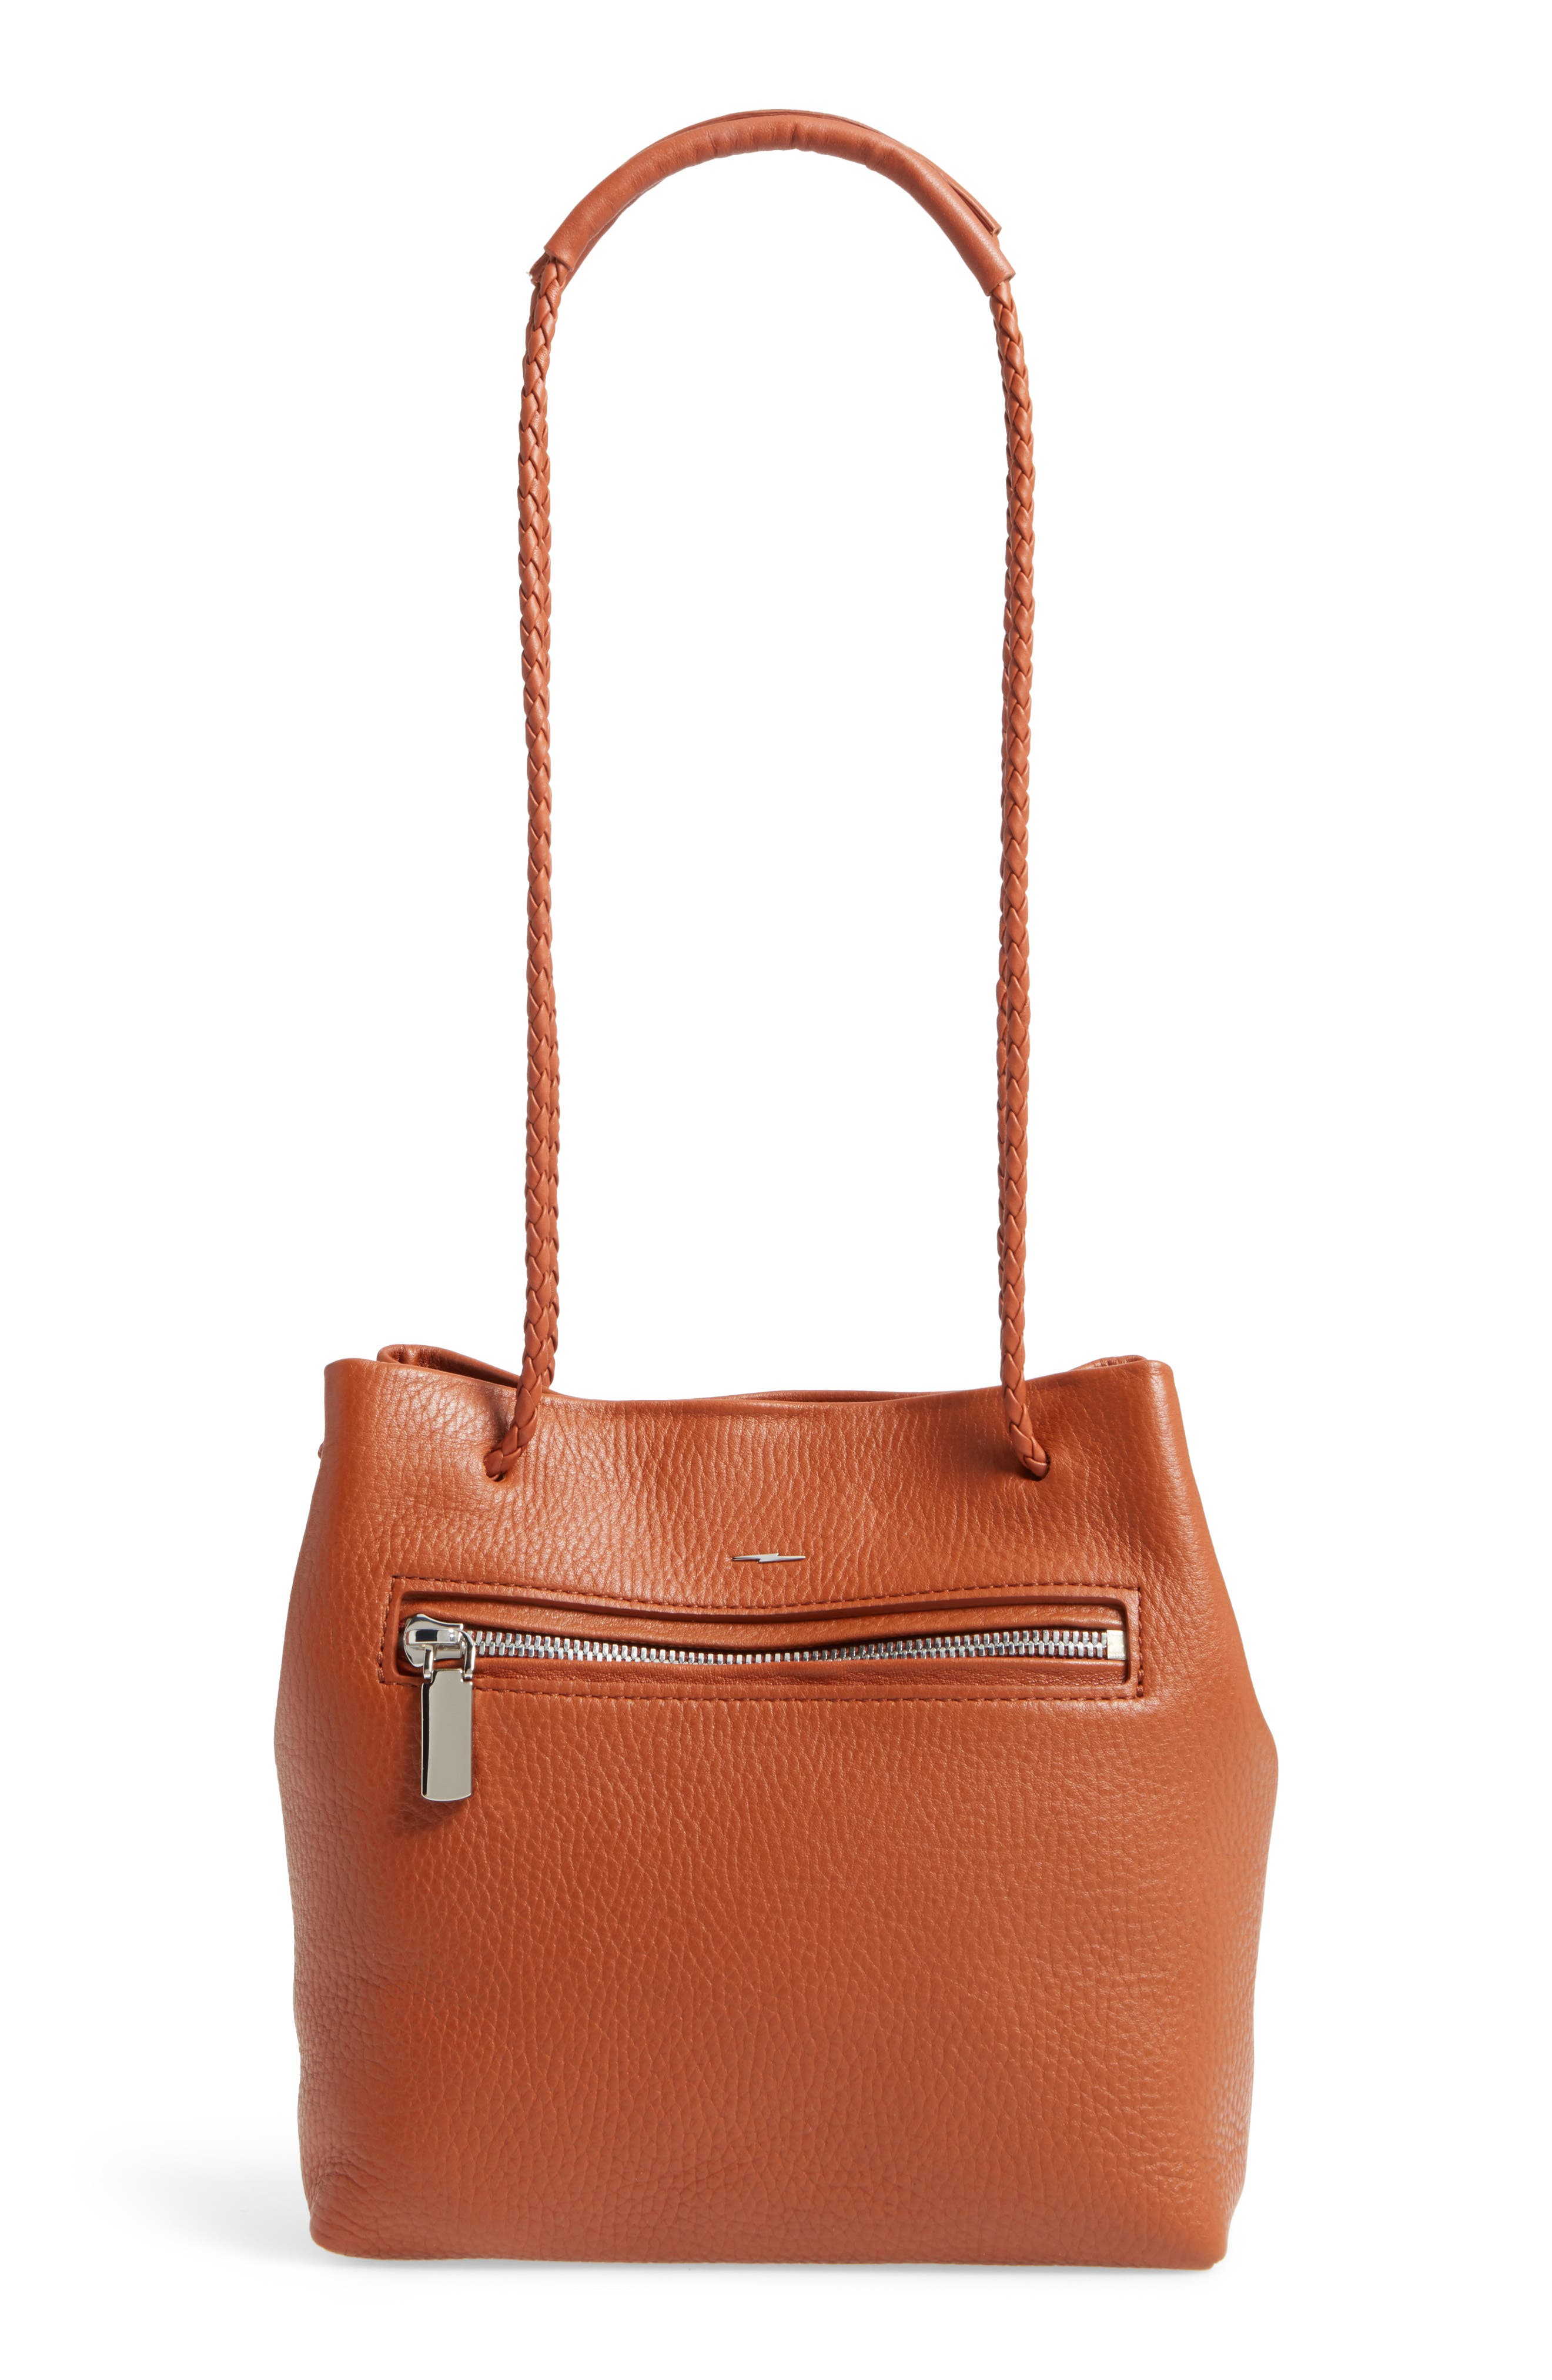 Main Image - Shinola Mini Pebbled Leather Drawstring Crossbody Bag